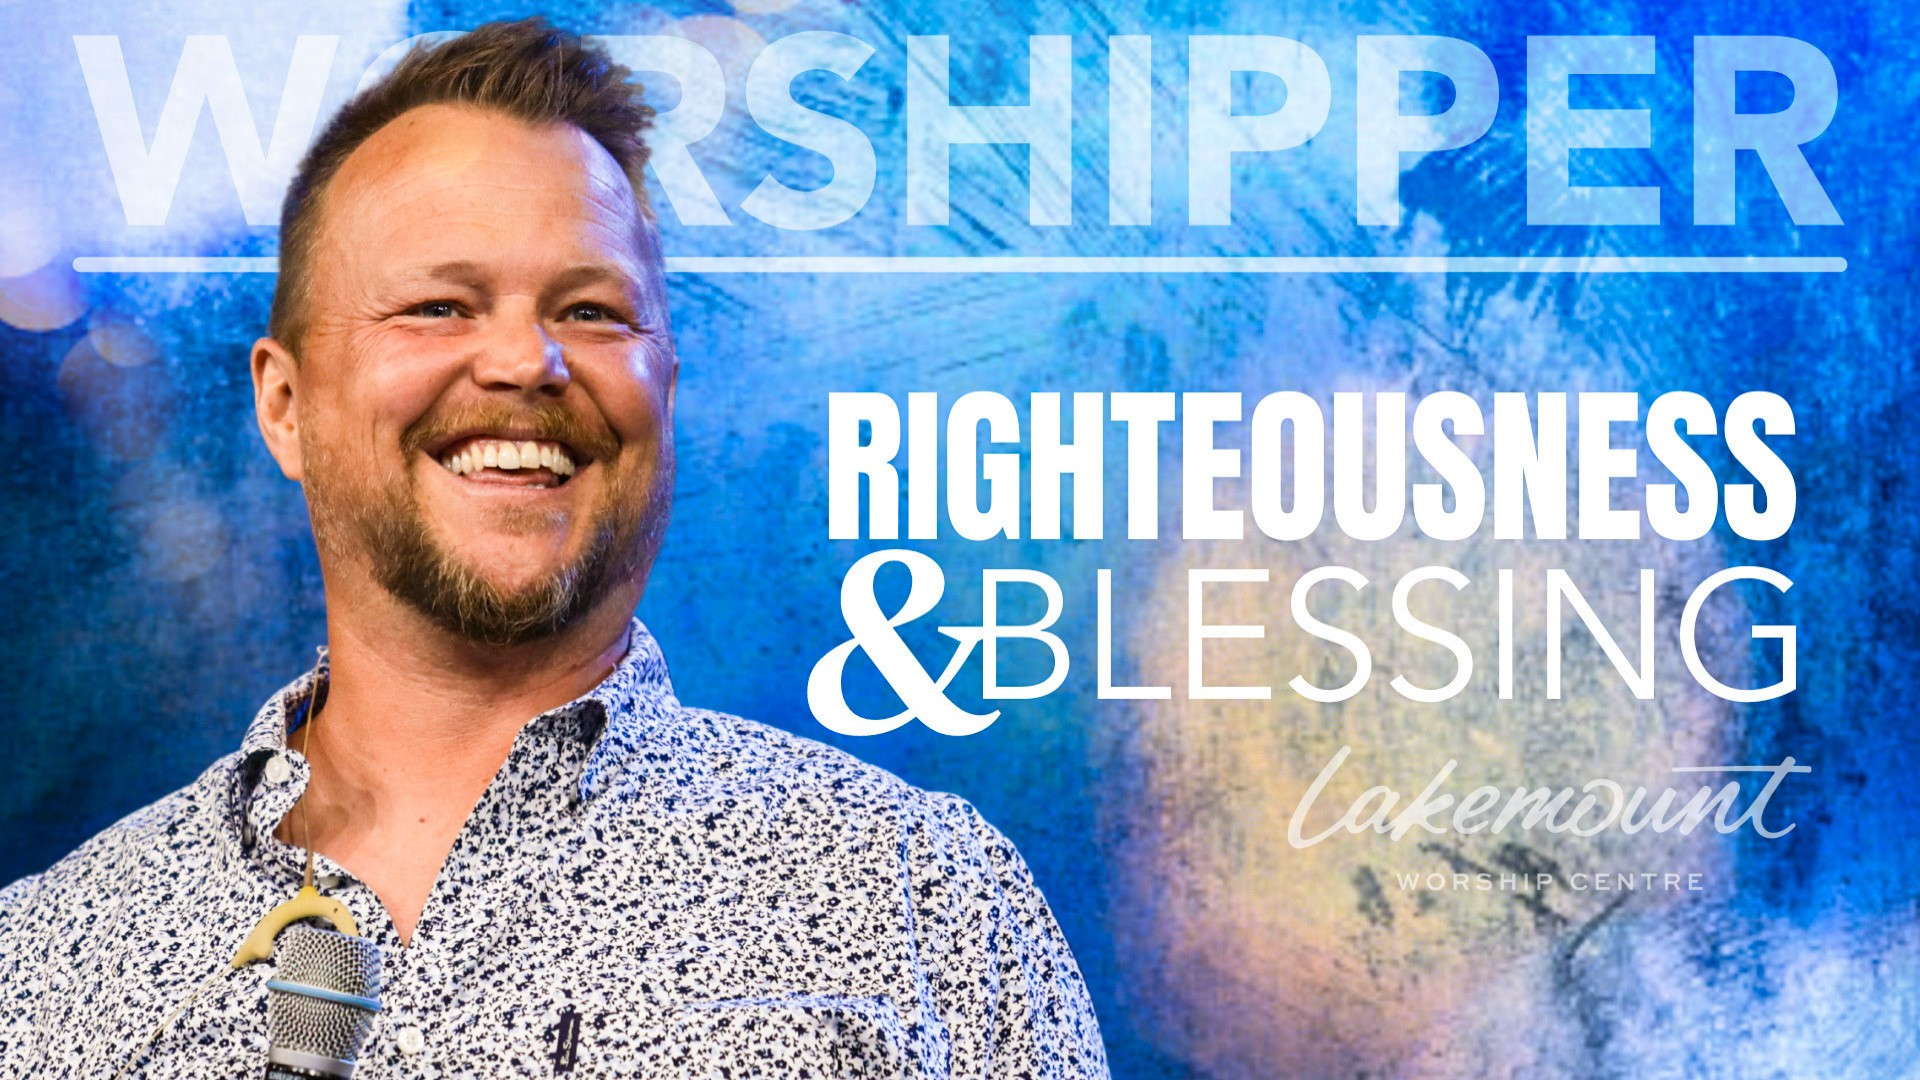 Video Thumbnail Worshipper:  Righteousness and Blessing   Sunday Service   August 22, 2021